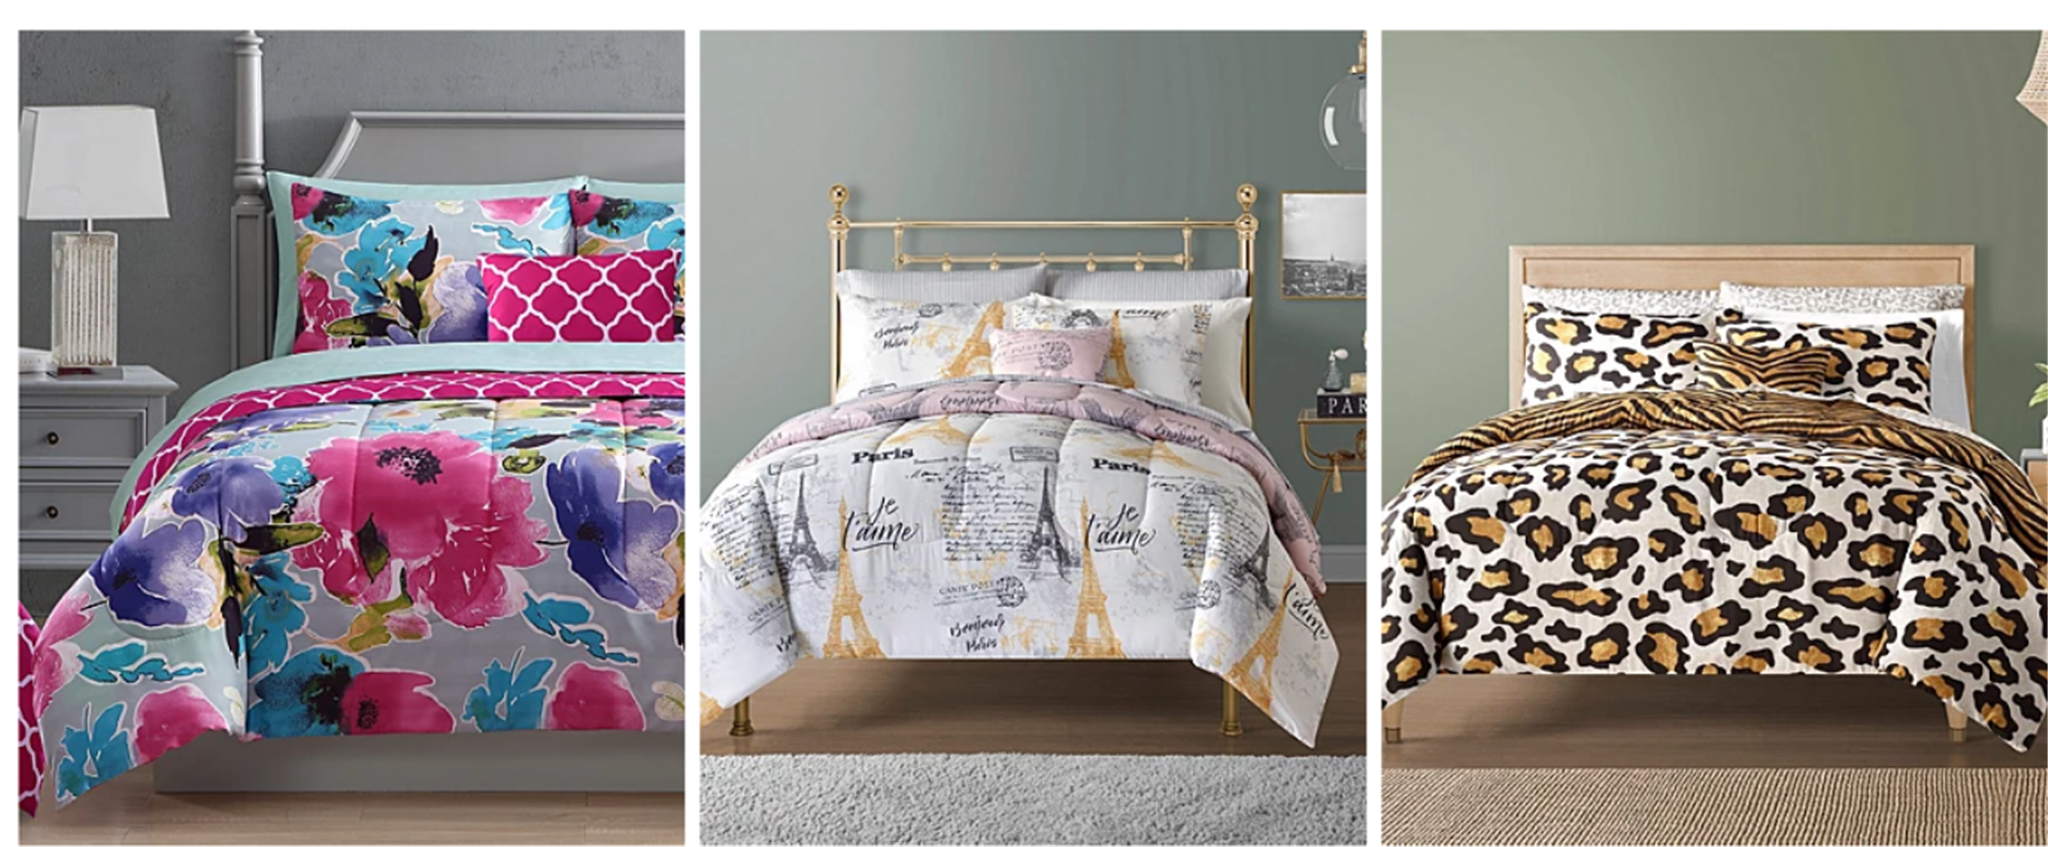 Macys.com – 12-Pc. Reversible Comforter Sets (Mult. Styles) Only $49.99 + Free Store Pickup!